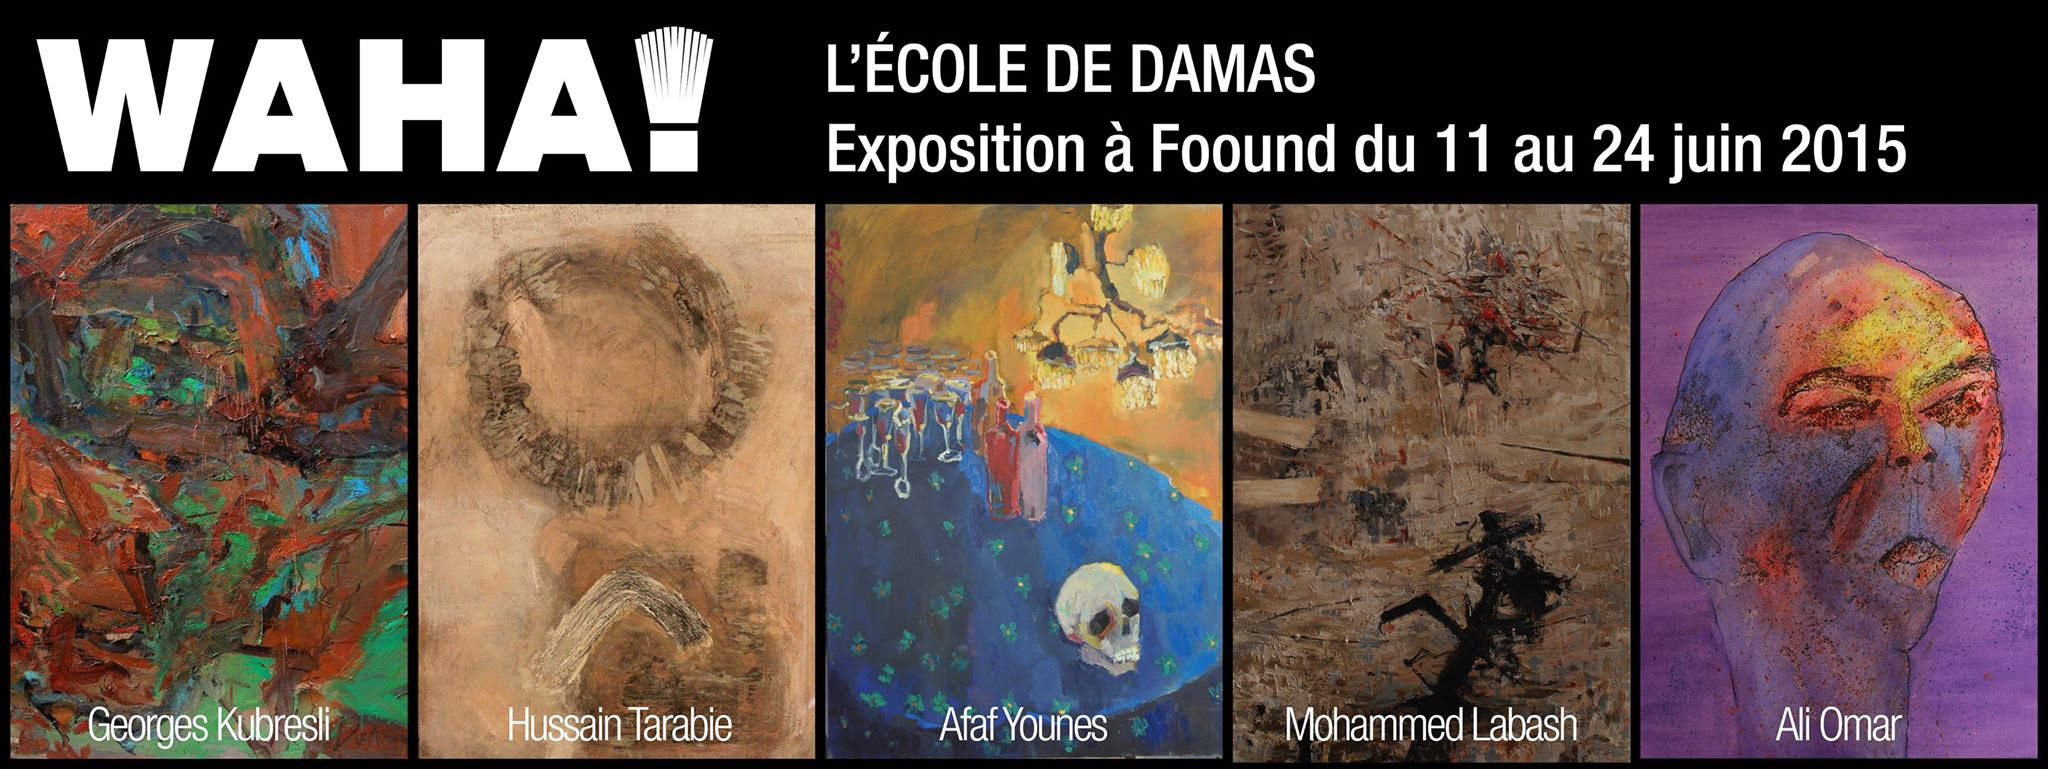 """Ecole de damas"" organisée par l'association WAHA"